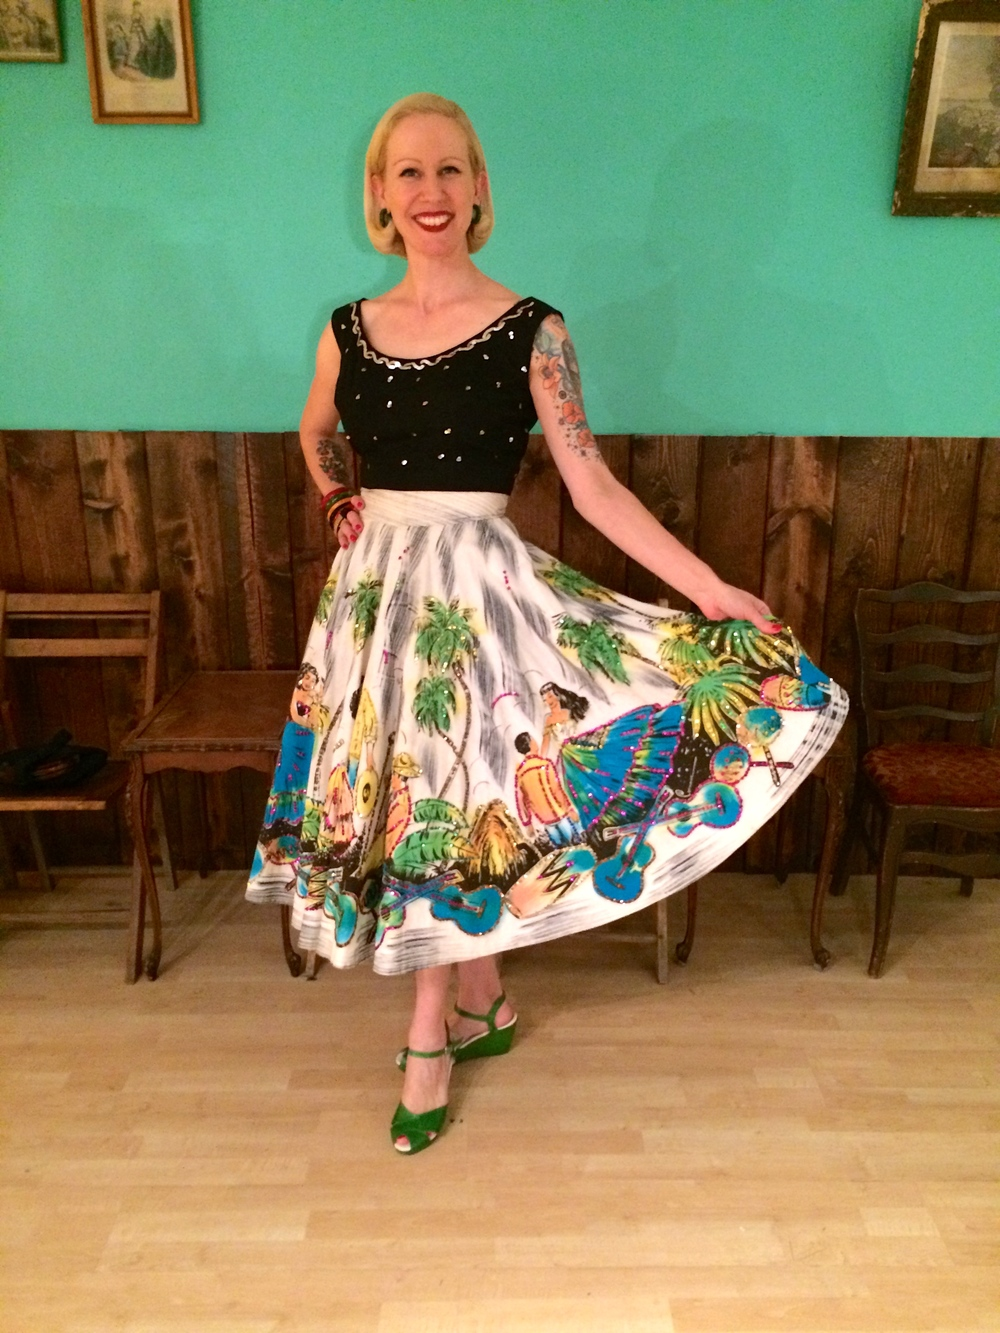 Elisa showing off her hand painted Mexican circle skirt